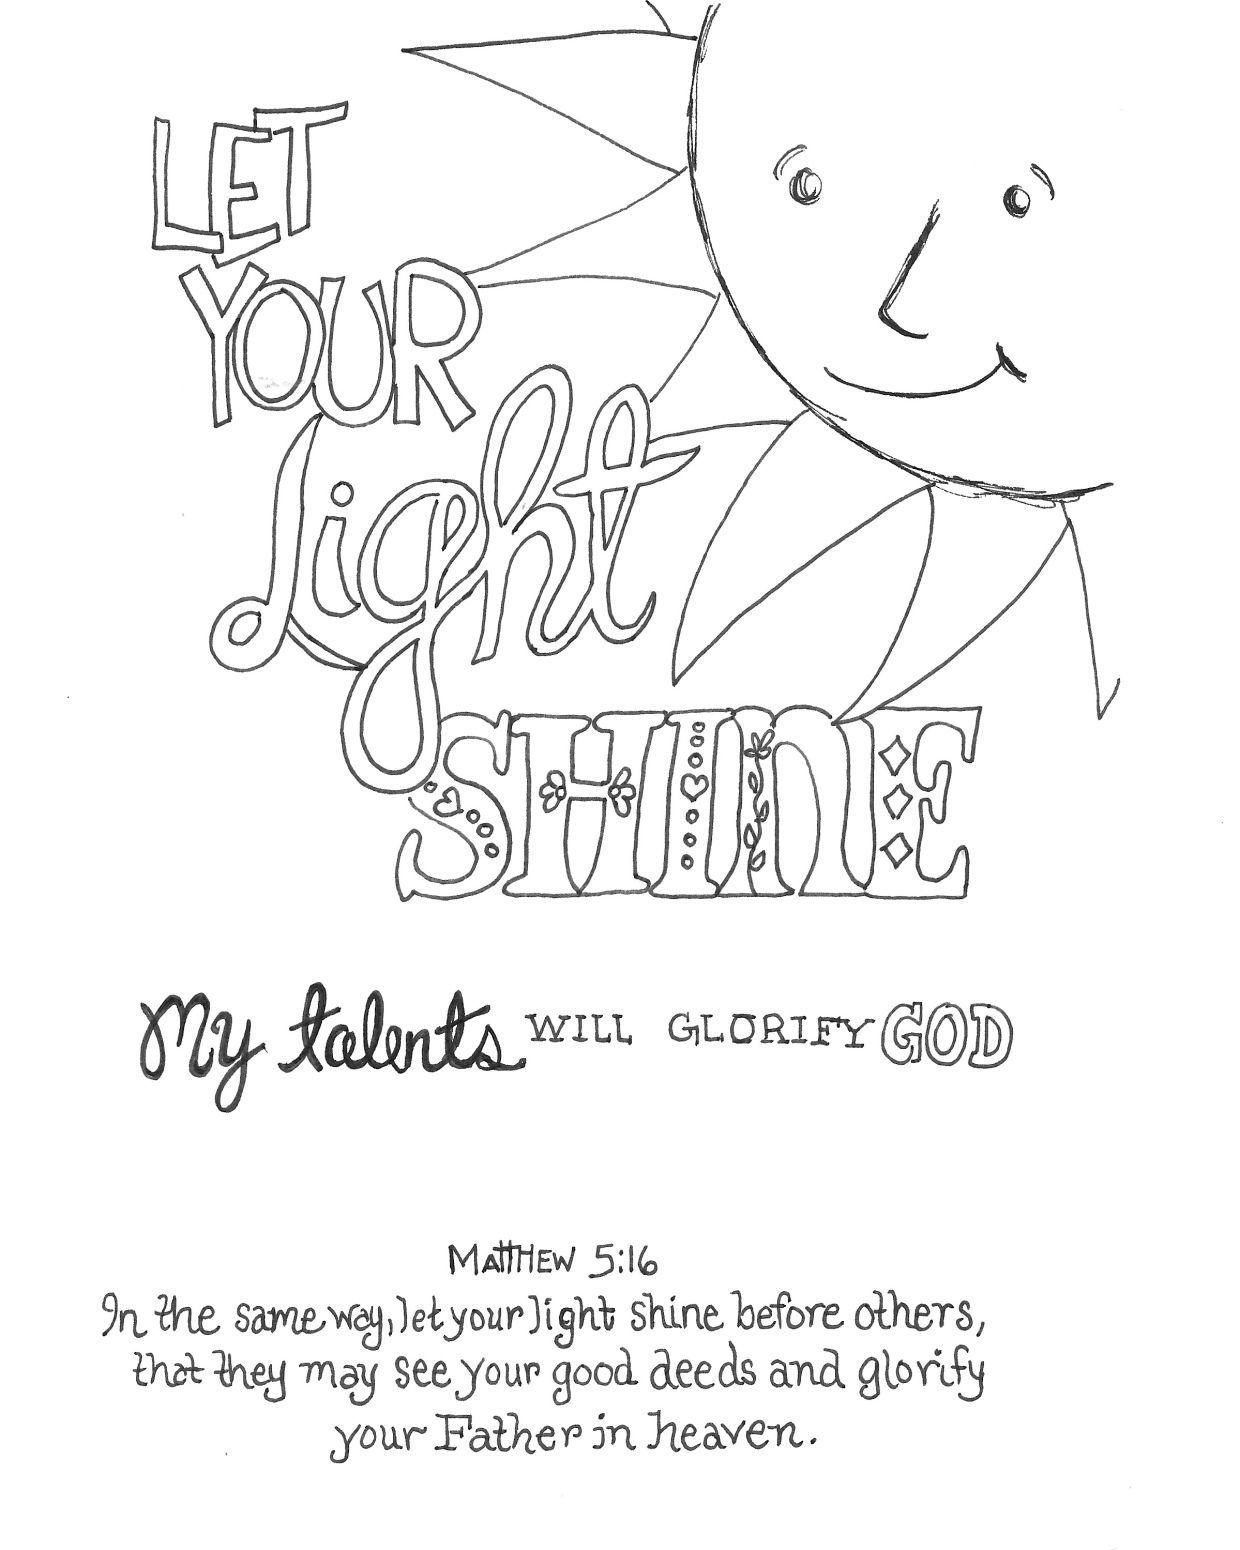 25b25f25fe25fe25b825bf25f25  Bible verse coloring page